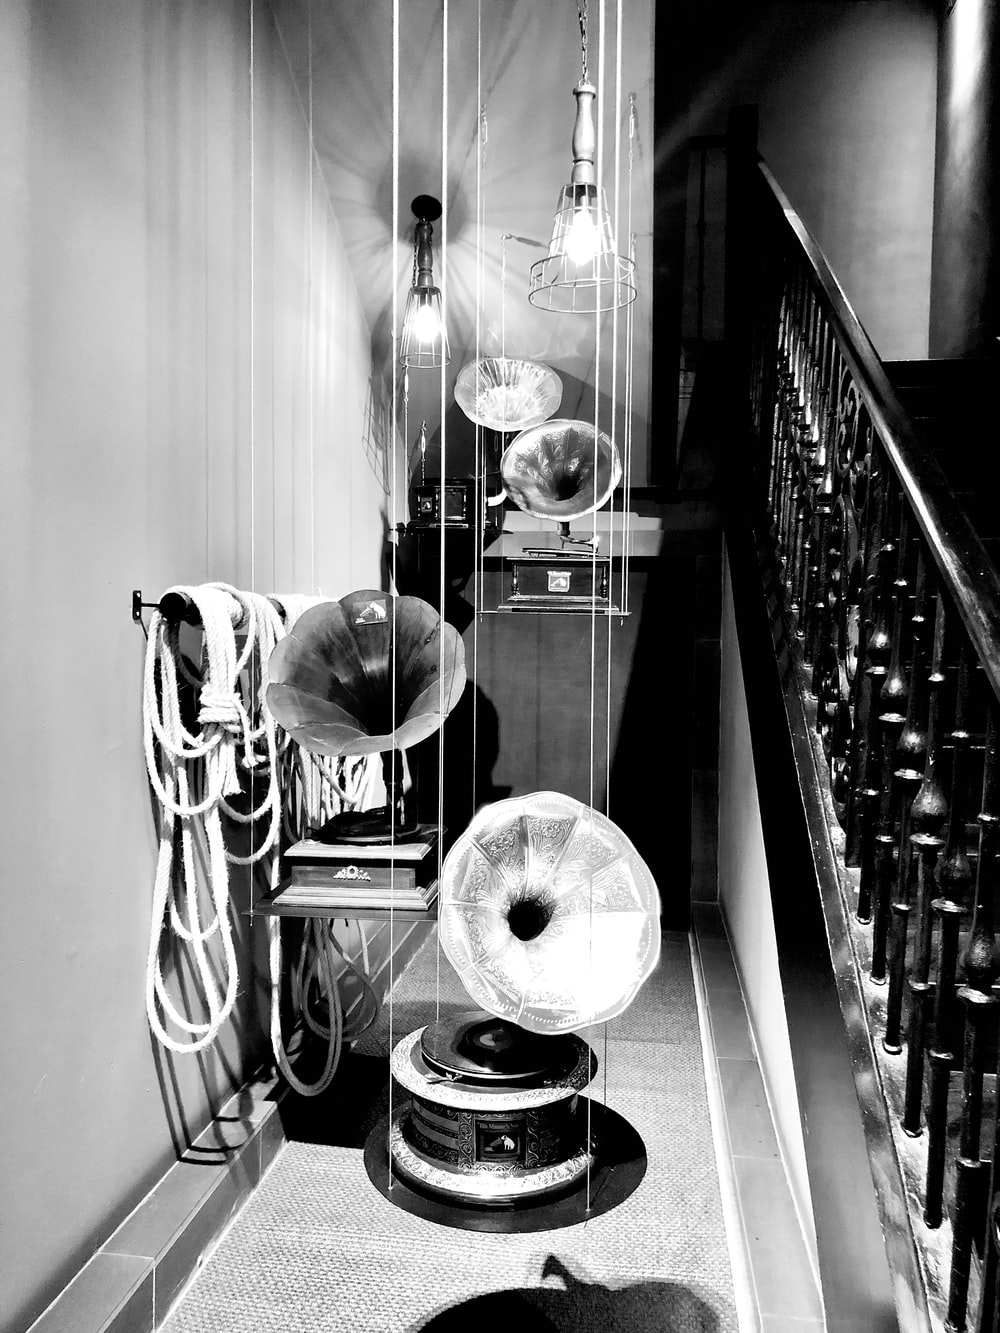 grayscale photography of instrument